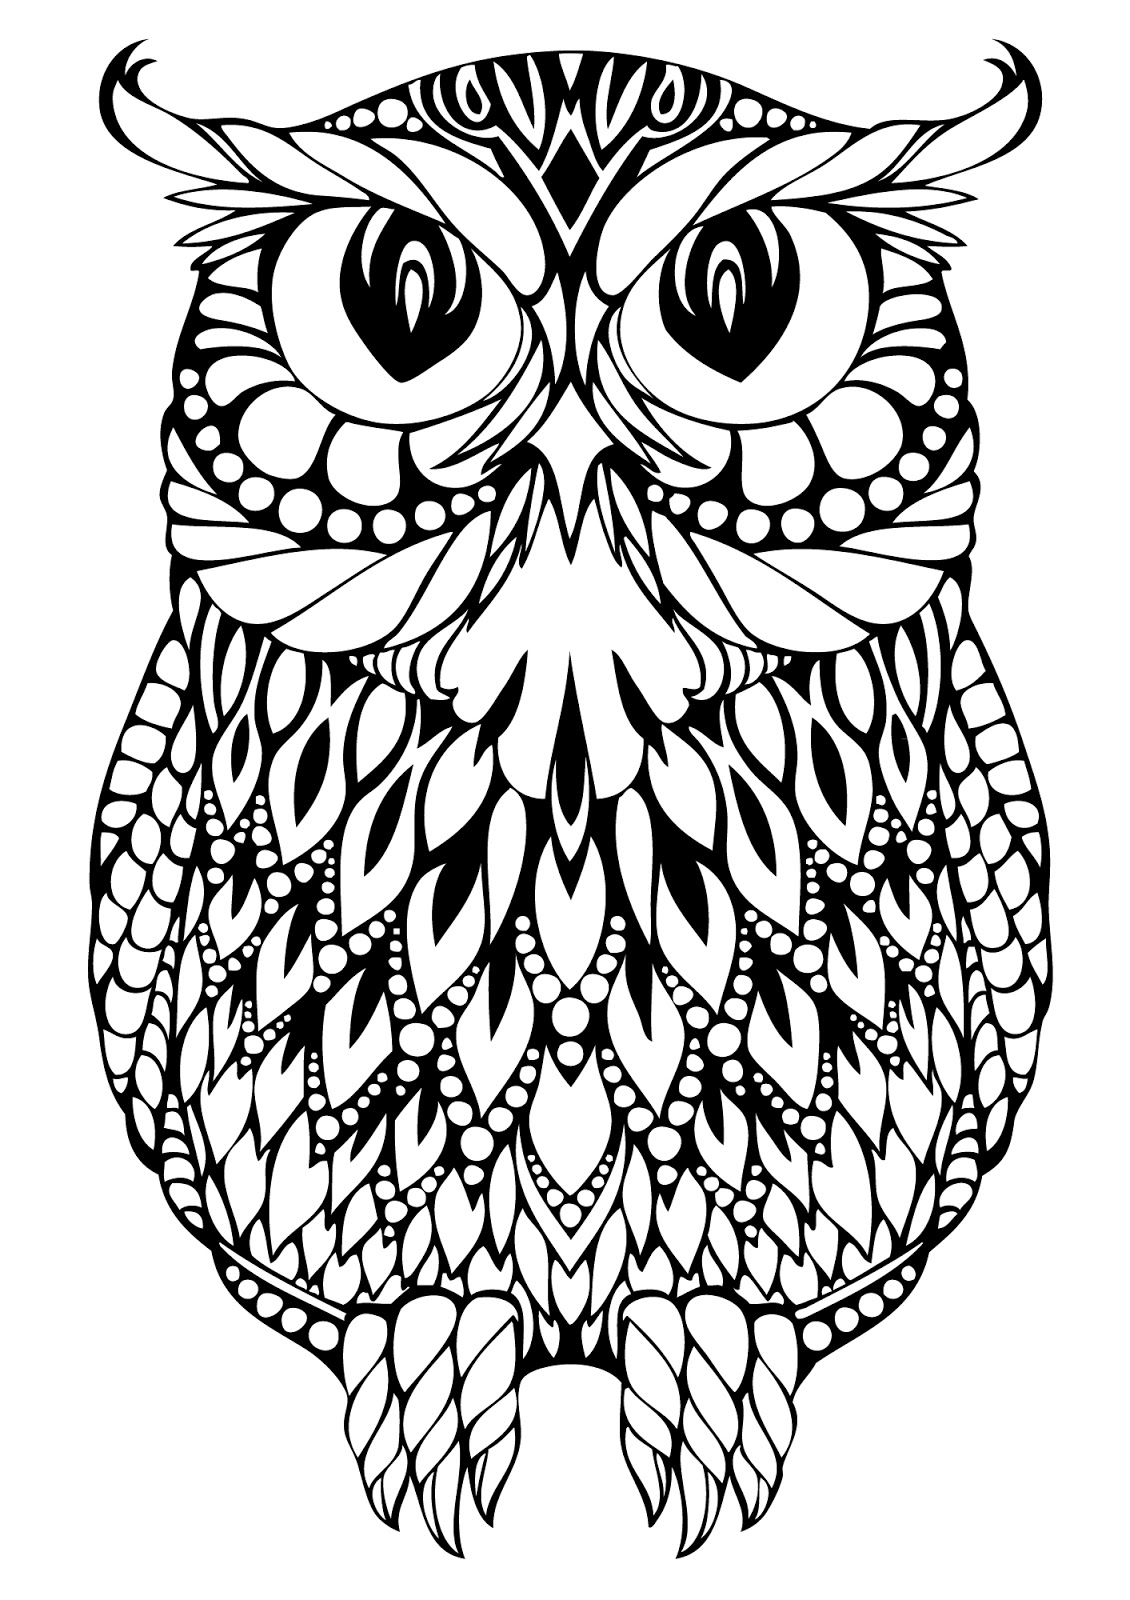 coloring adults printable animal coloring pages for adults best coloring pages for adults printable coloring